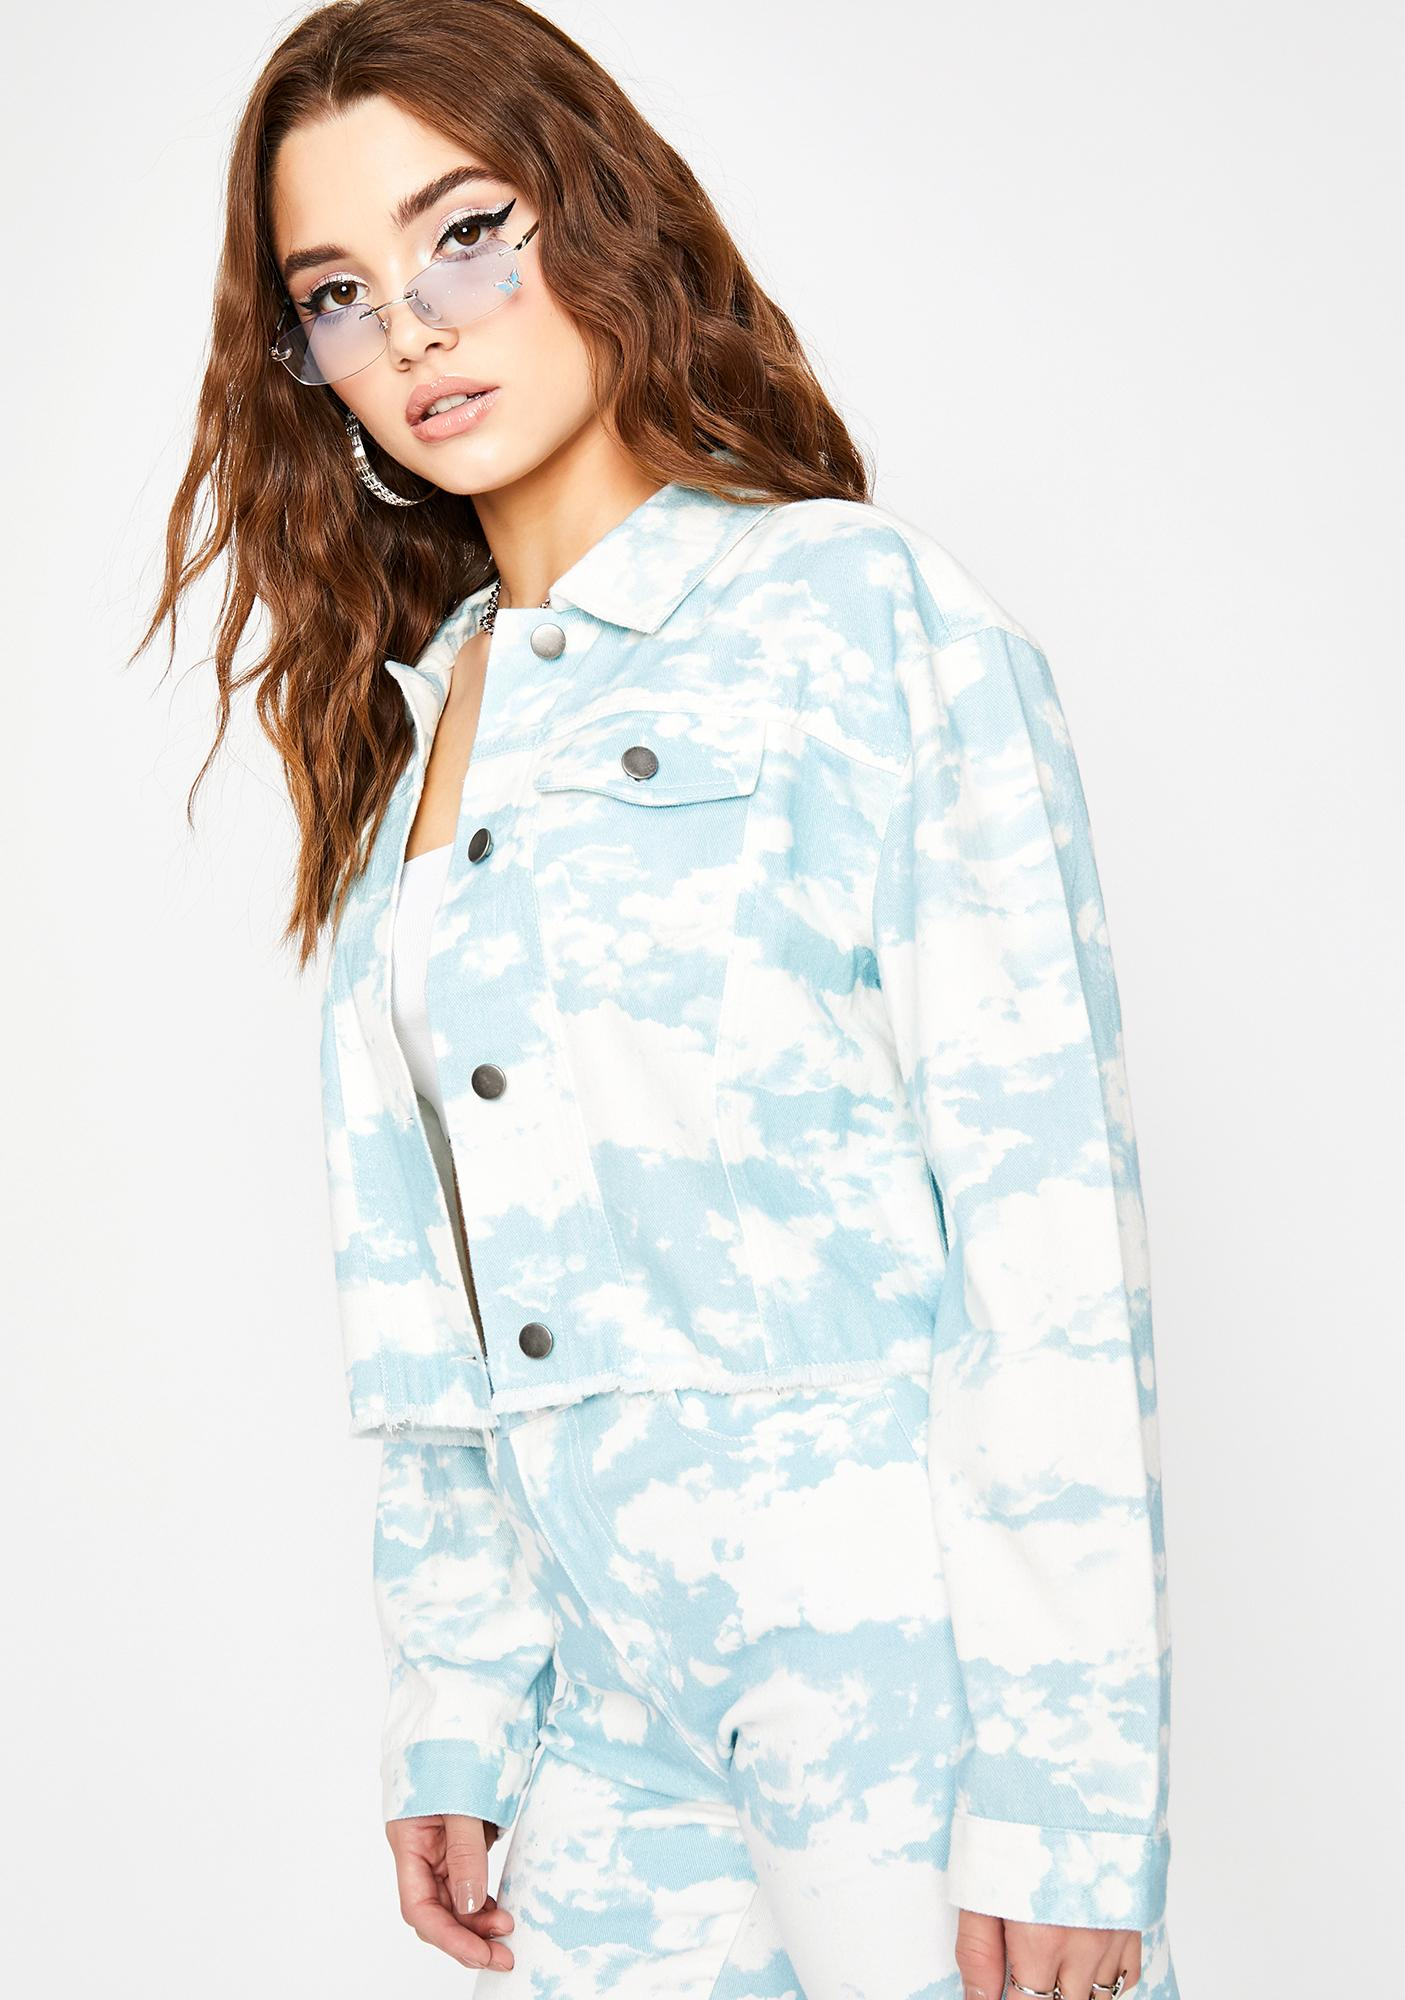 HOROSCOPEZ Caught Daydreaming Denim Jacket